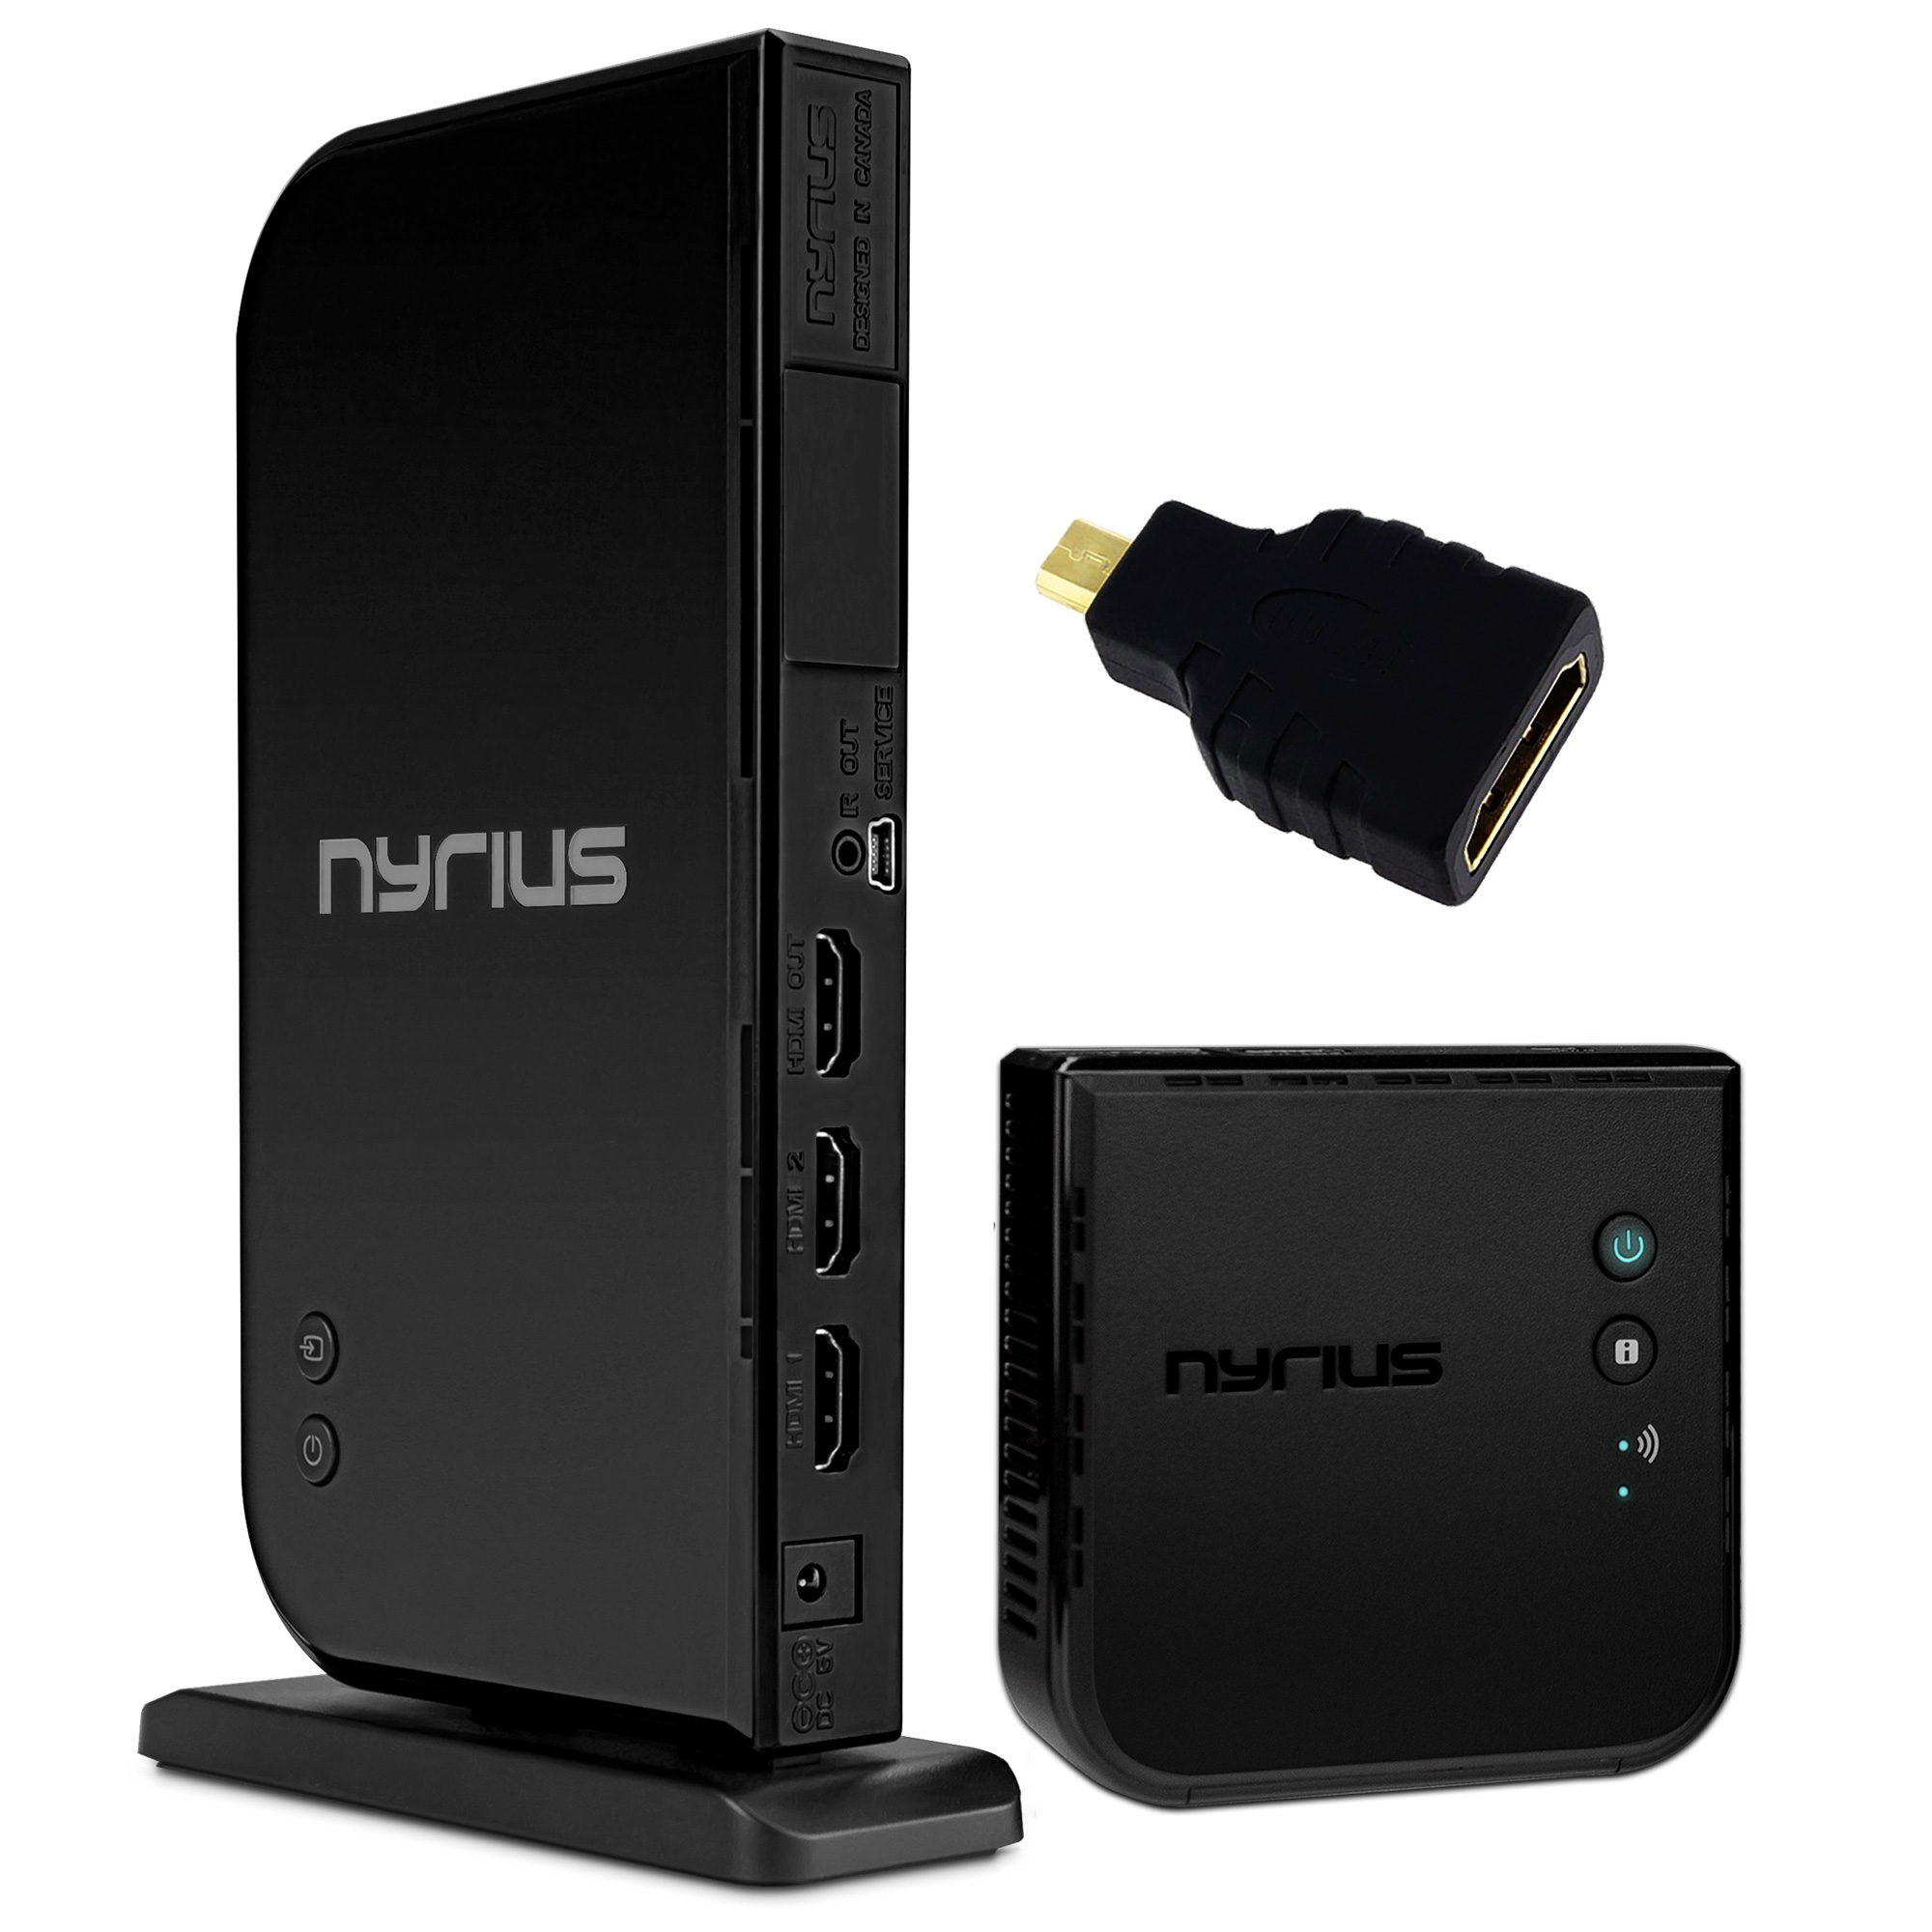 Nyrius ARIES Home+ Wireless HDMI 2x Input Transmitter & Receiver for Streaming HD 1080p 3D Video and Digital Audio - BONUS HDMI to Micro HDMI Adapter Included